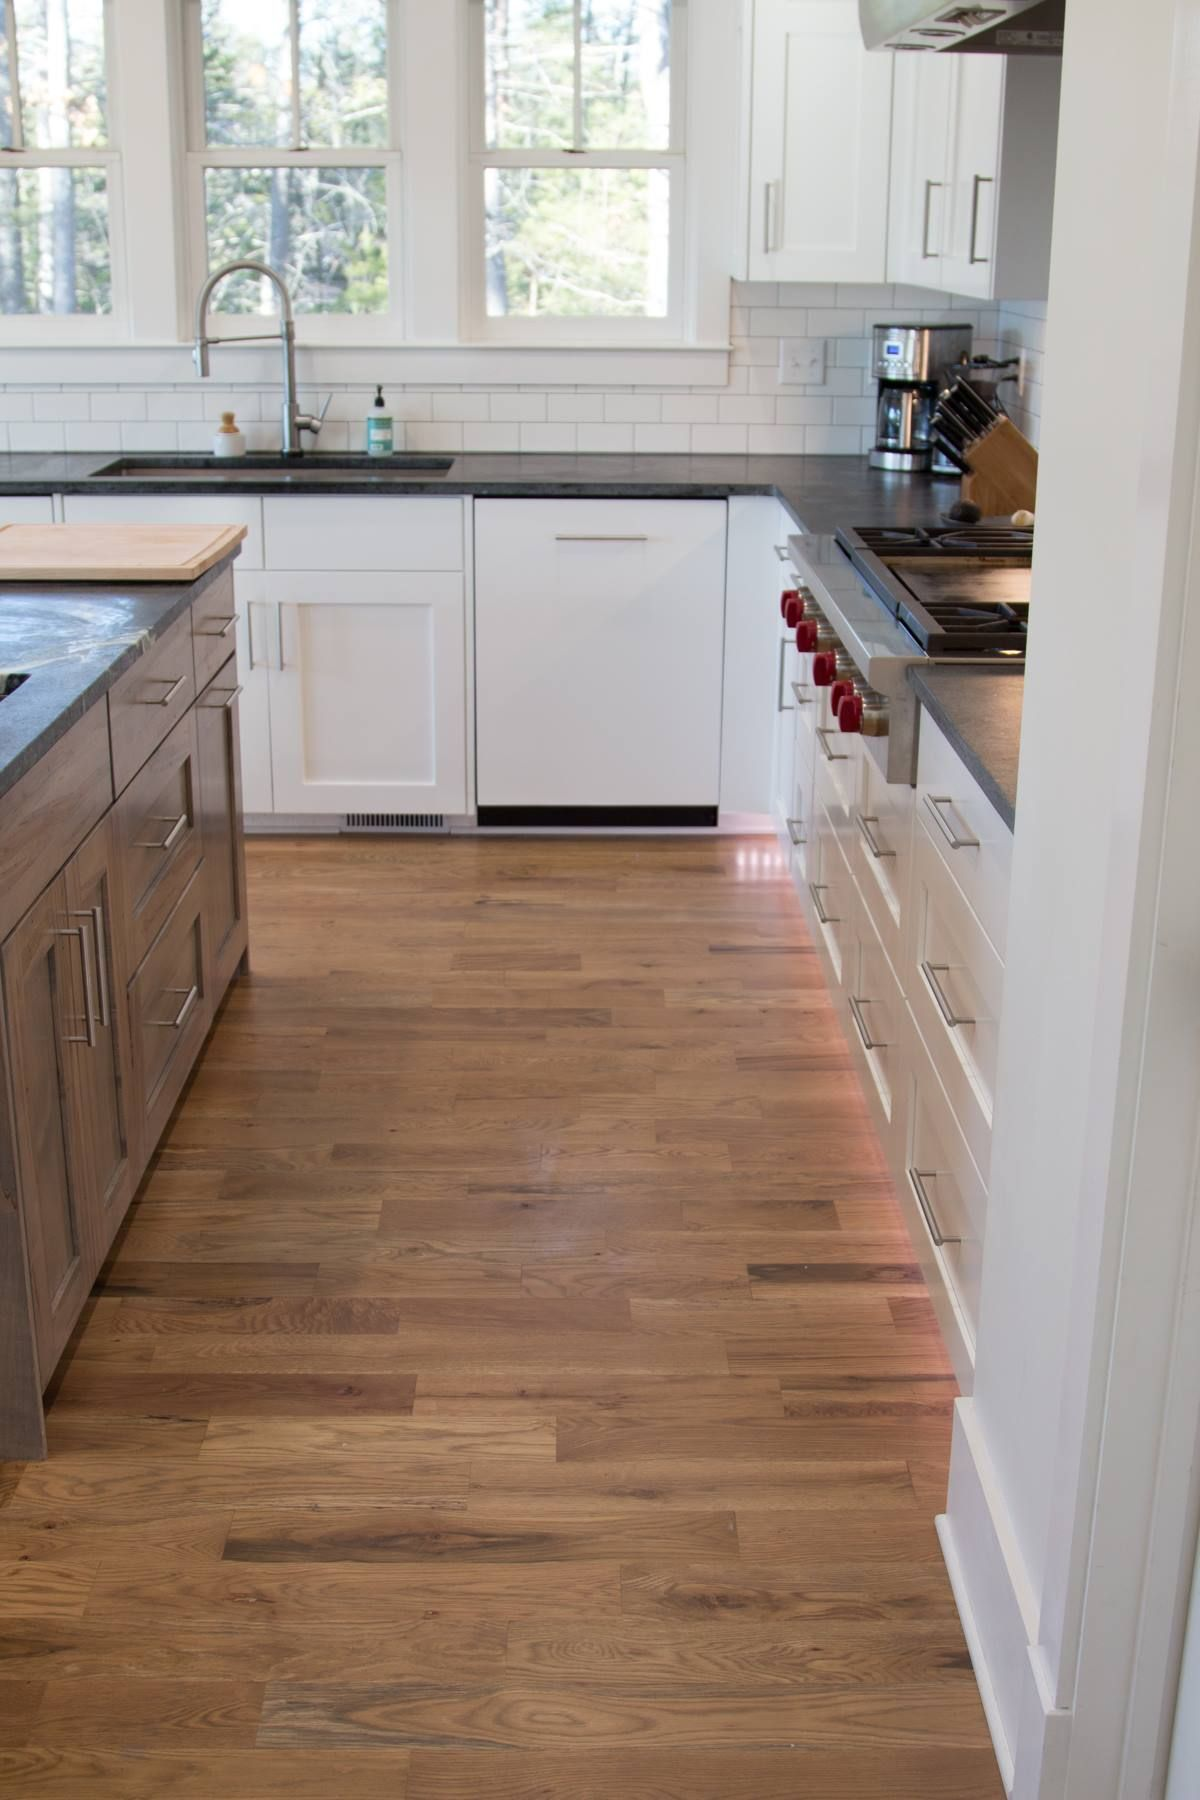 This Is A 4 1 4 Width 2 Common White Oak Unfinished Hardwood Floor That Was Finished With D Unfinished Hardwood Flooring Solid Wood Flooring White Oak Floors